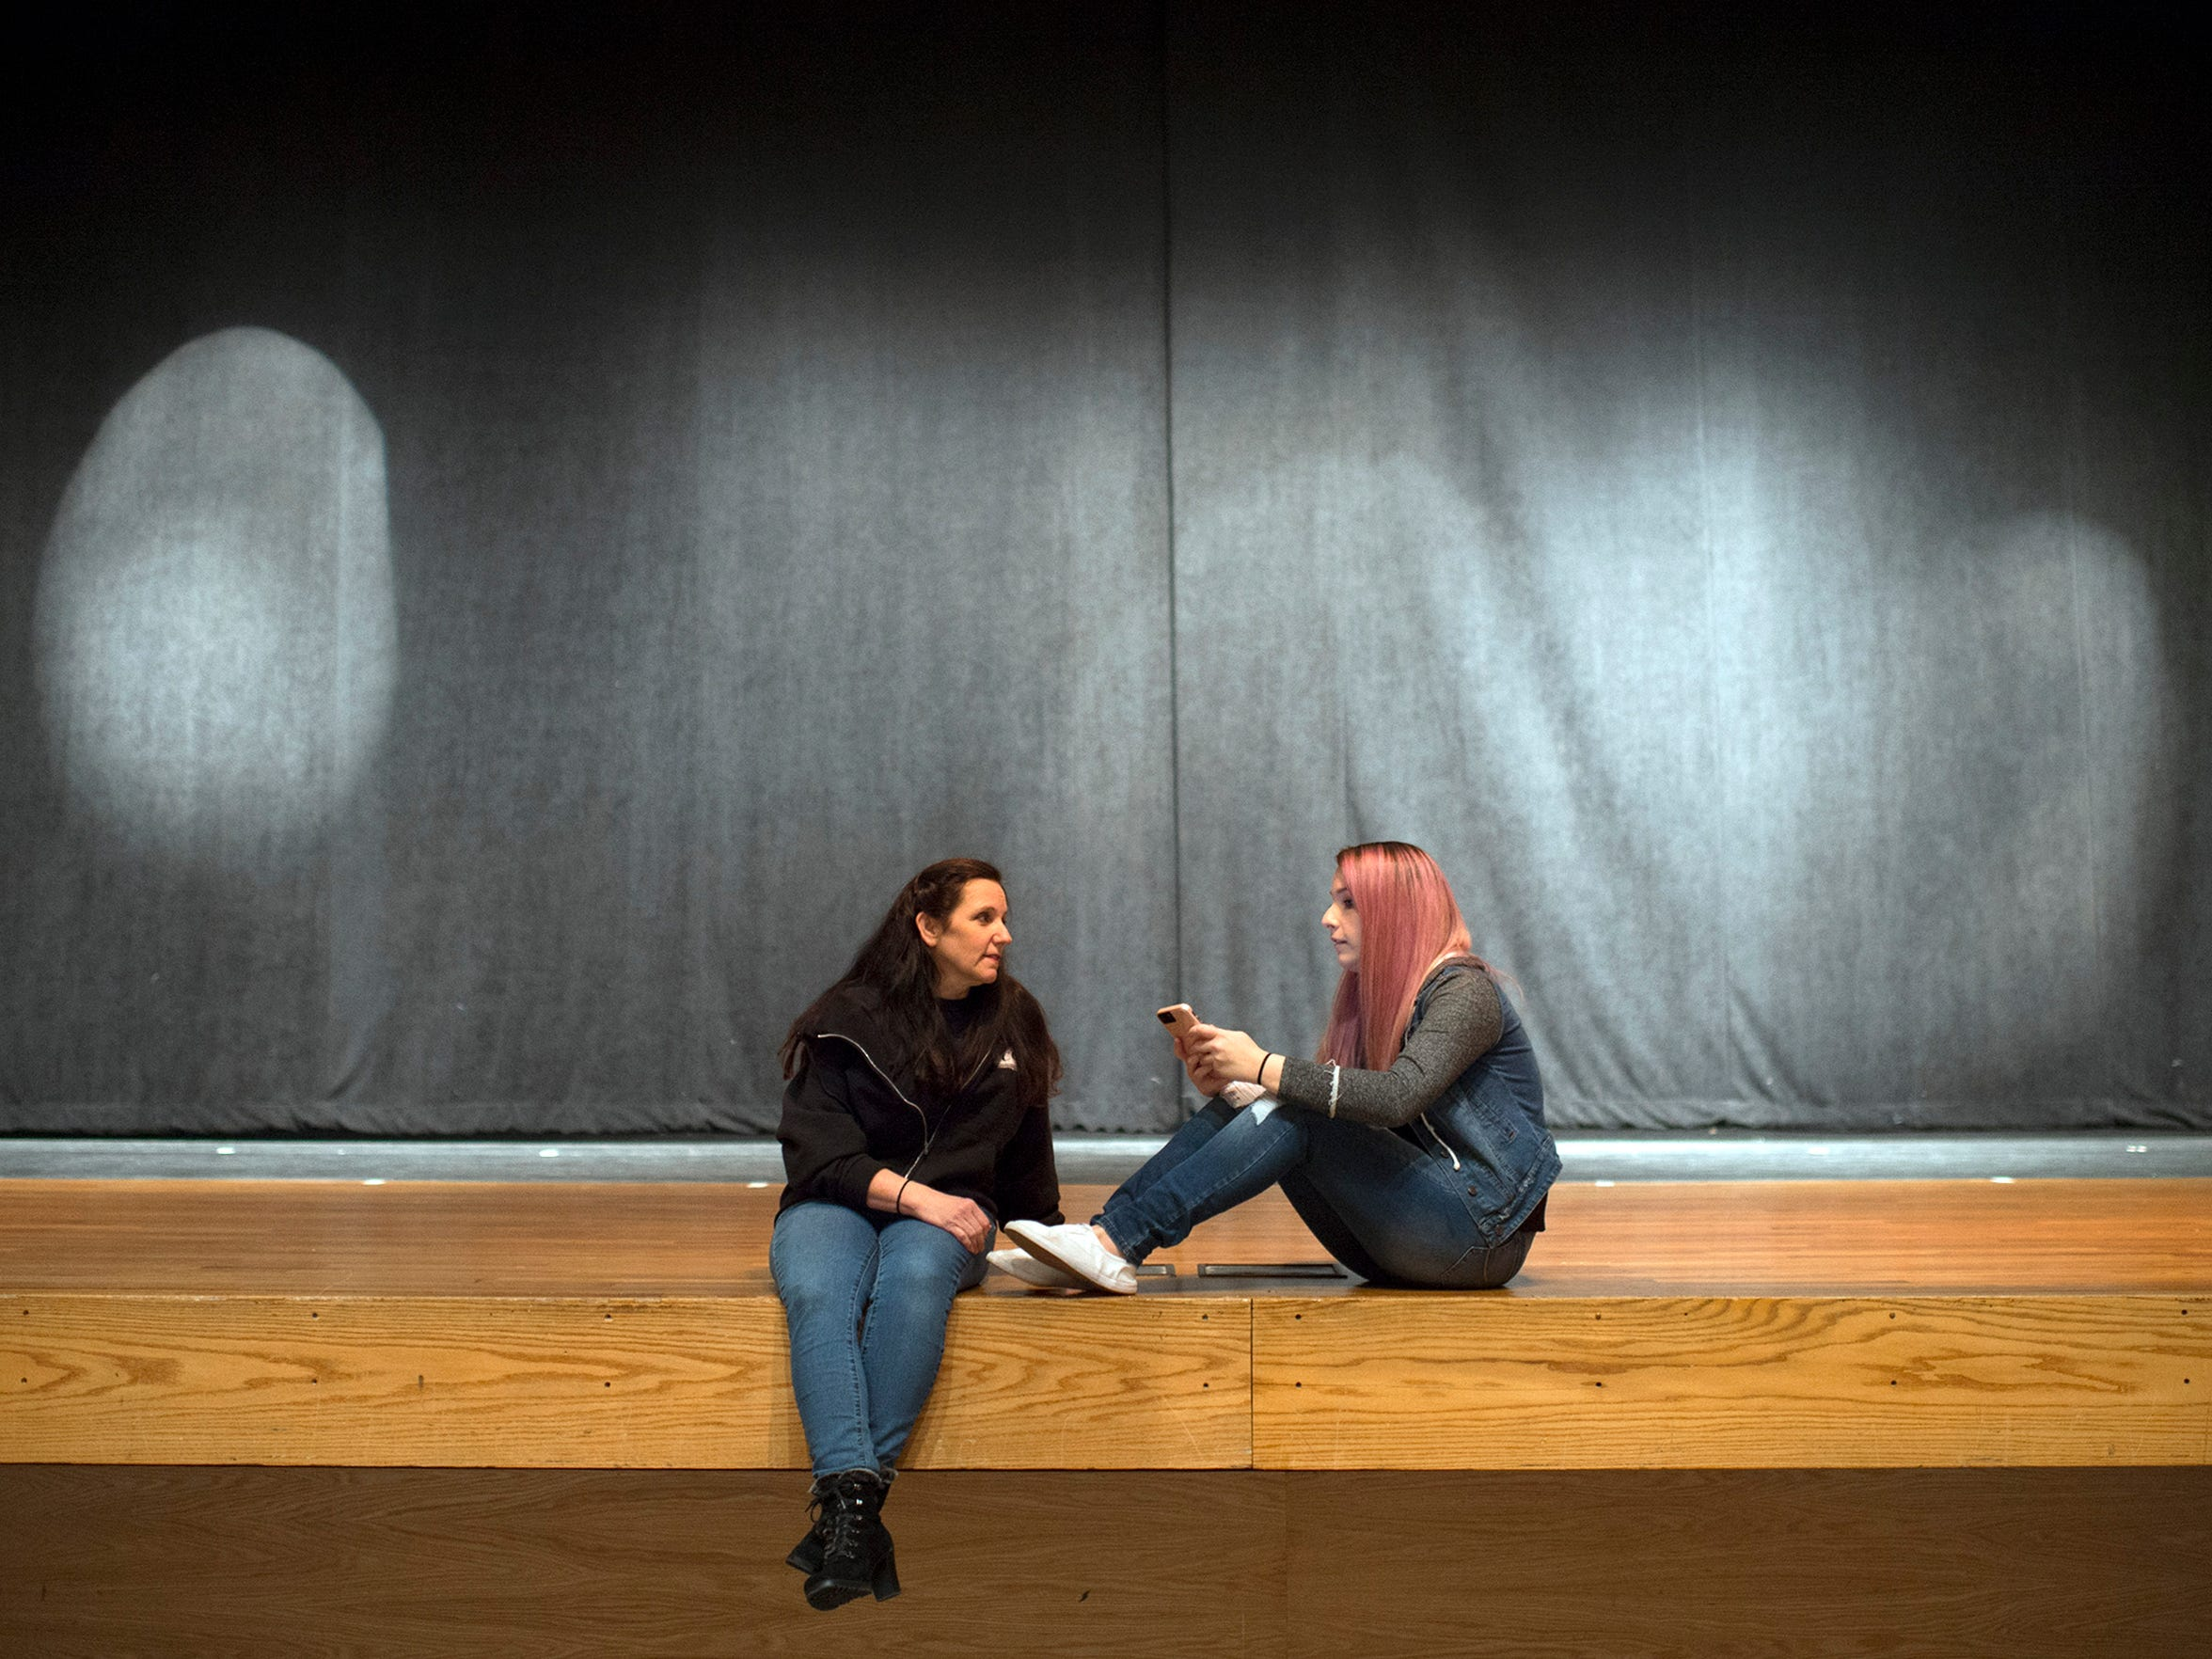 Charlene Maycott, left, sits on stage with her daughter Monica Maycott as they pose for a portrait before an addiction awareness event Thursday, Jan. 25, 2018 at Williamstown High School in Williamstown, N.J. Monica is in recovery for heroin addiction.